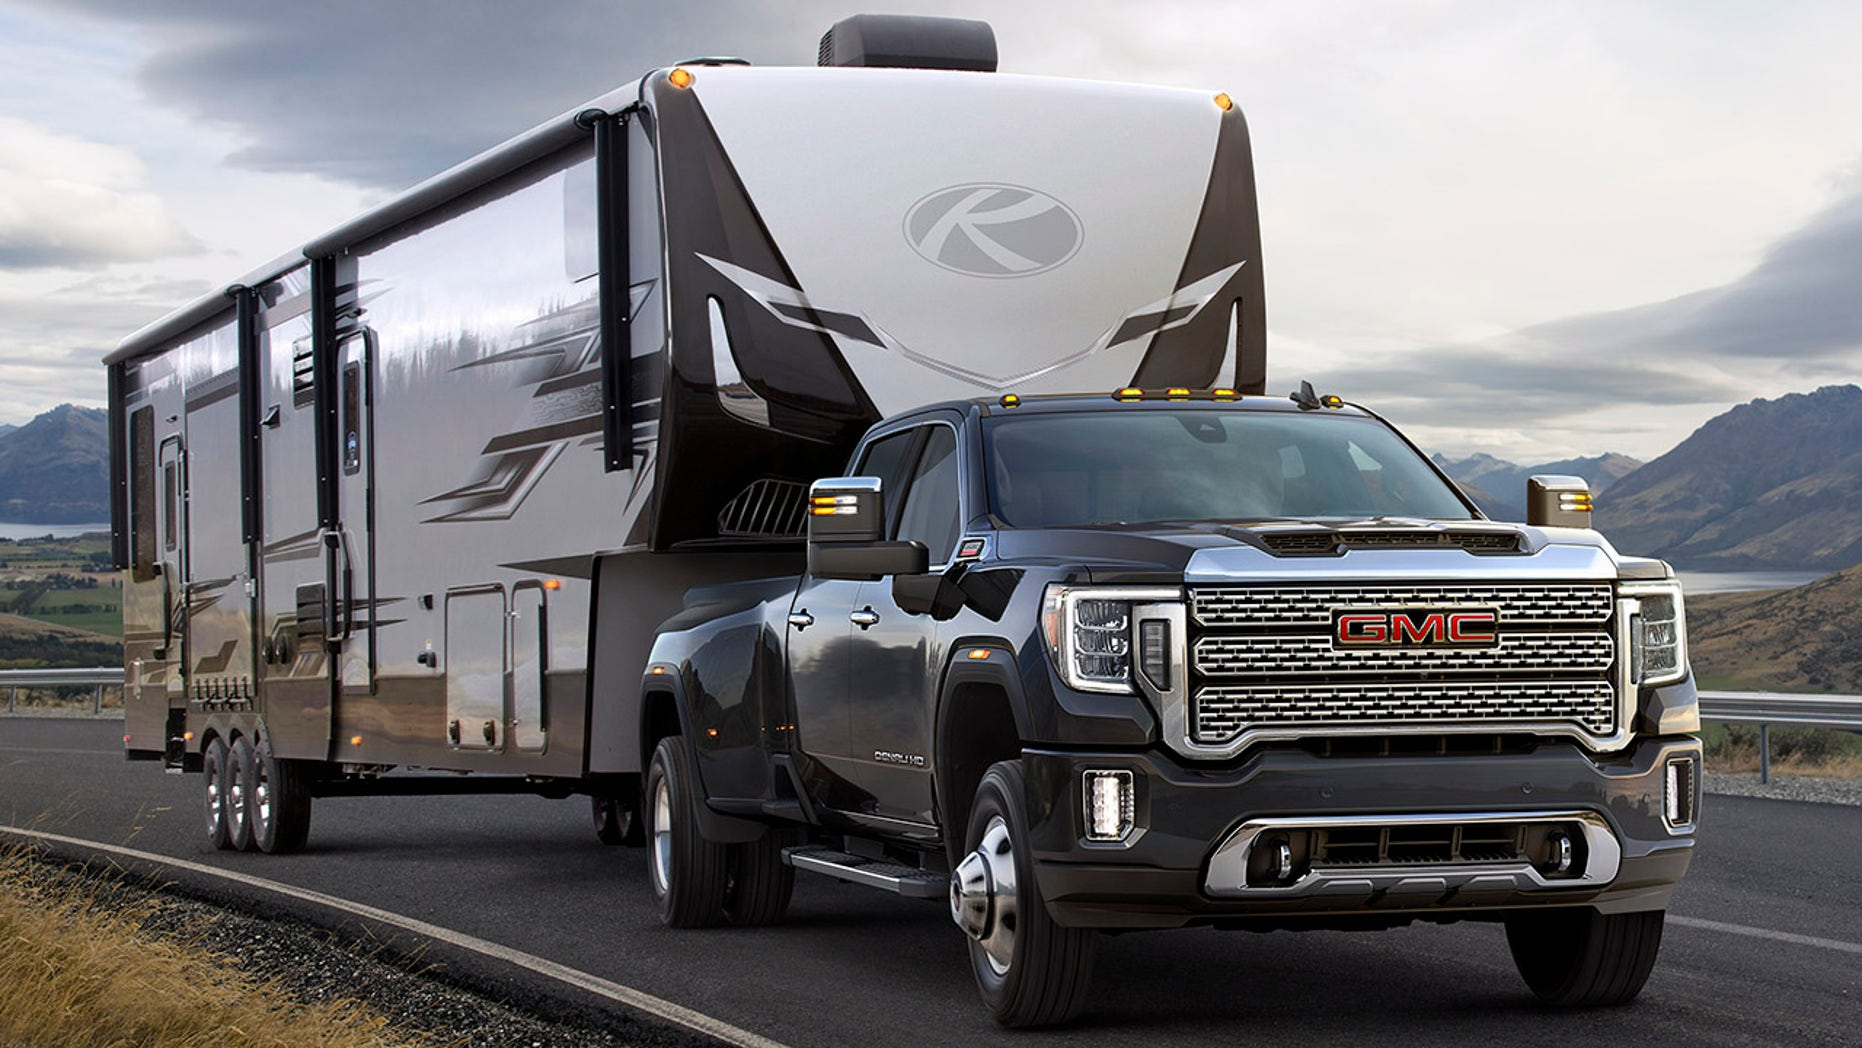 2020 GMC Sierra HD pickup revealed with X-ray vision | Fox ...